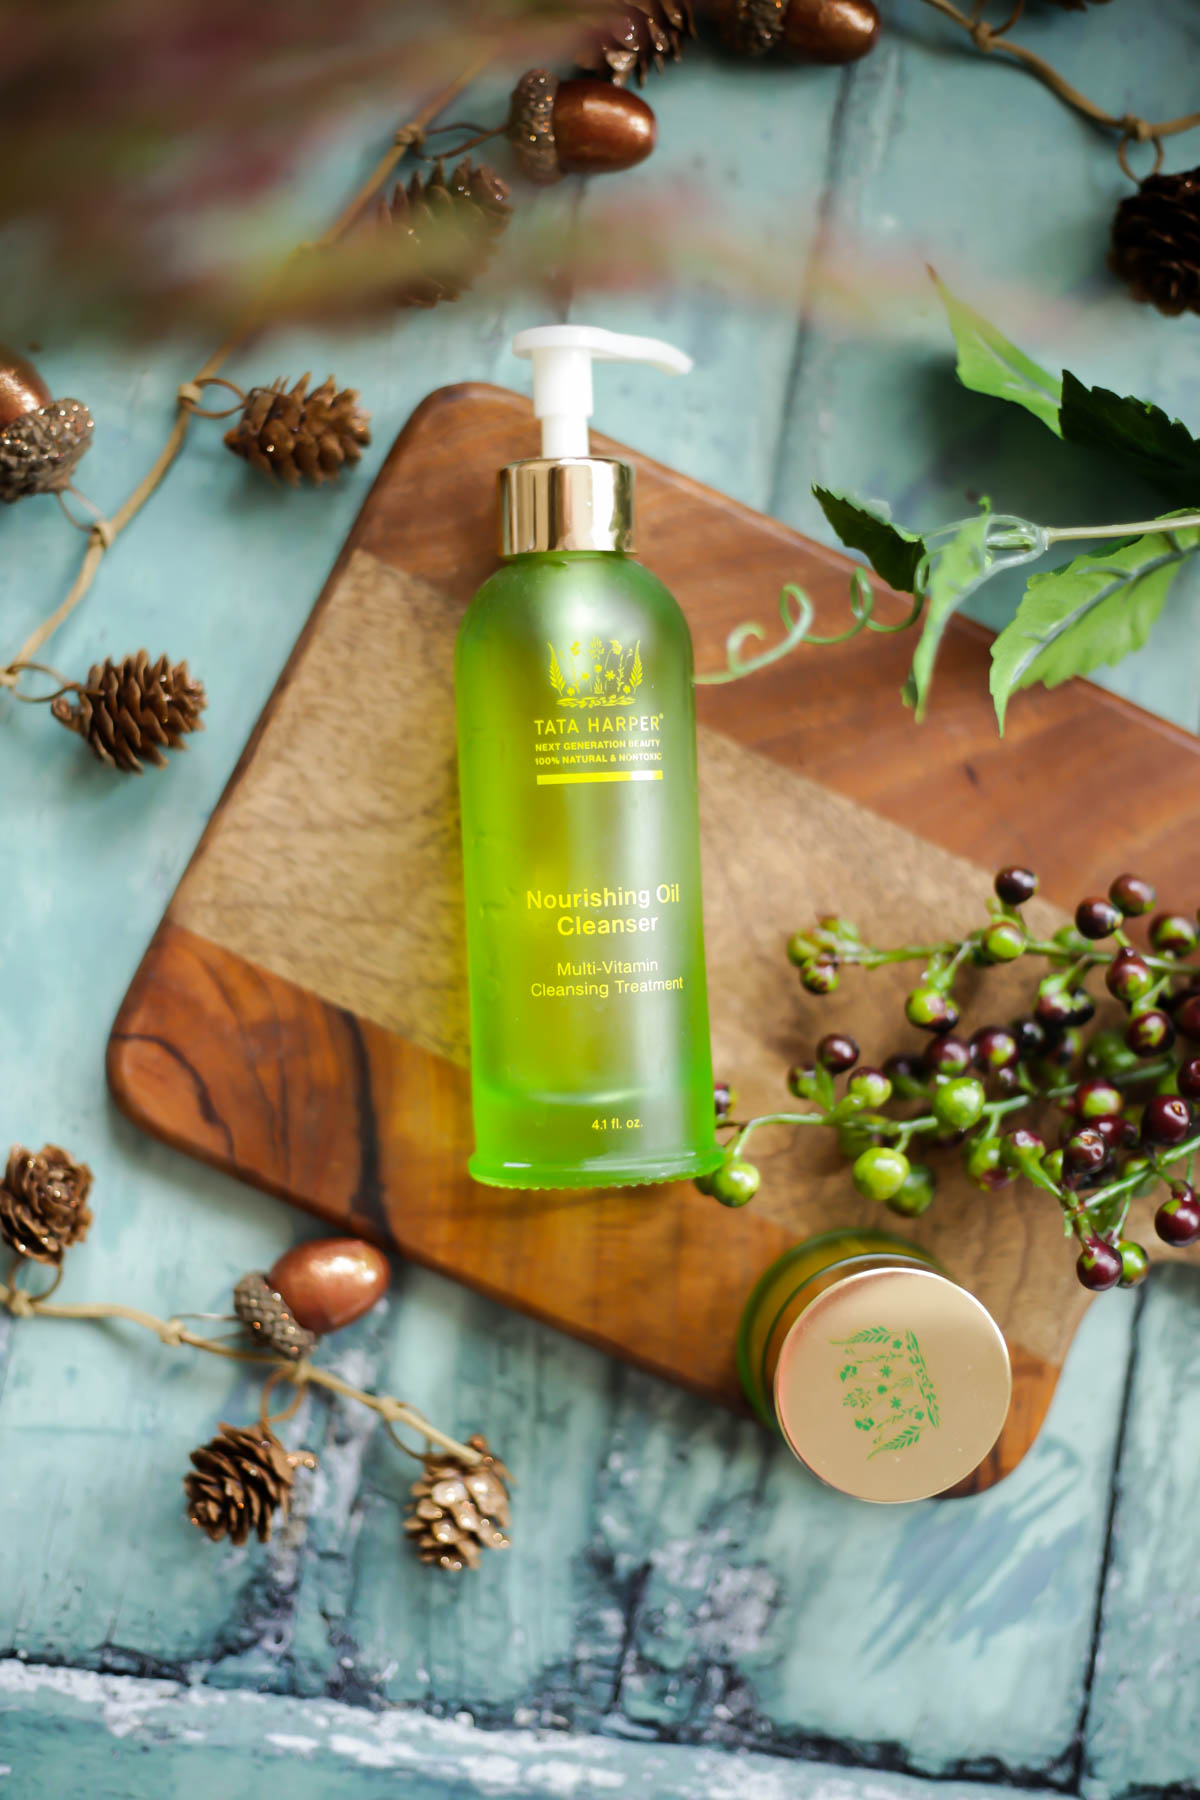 Tata Harper- A brand I've been wanting to trial for a while- Tata Harper Nourishing Oil Cleanser